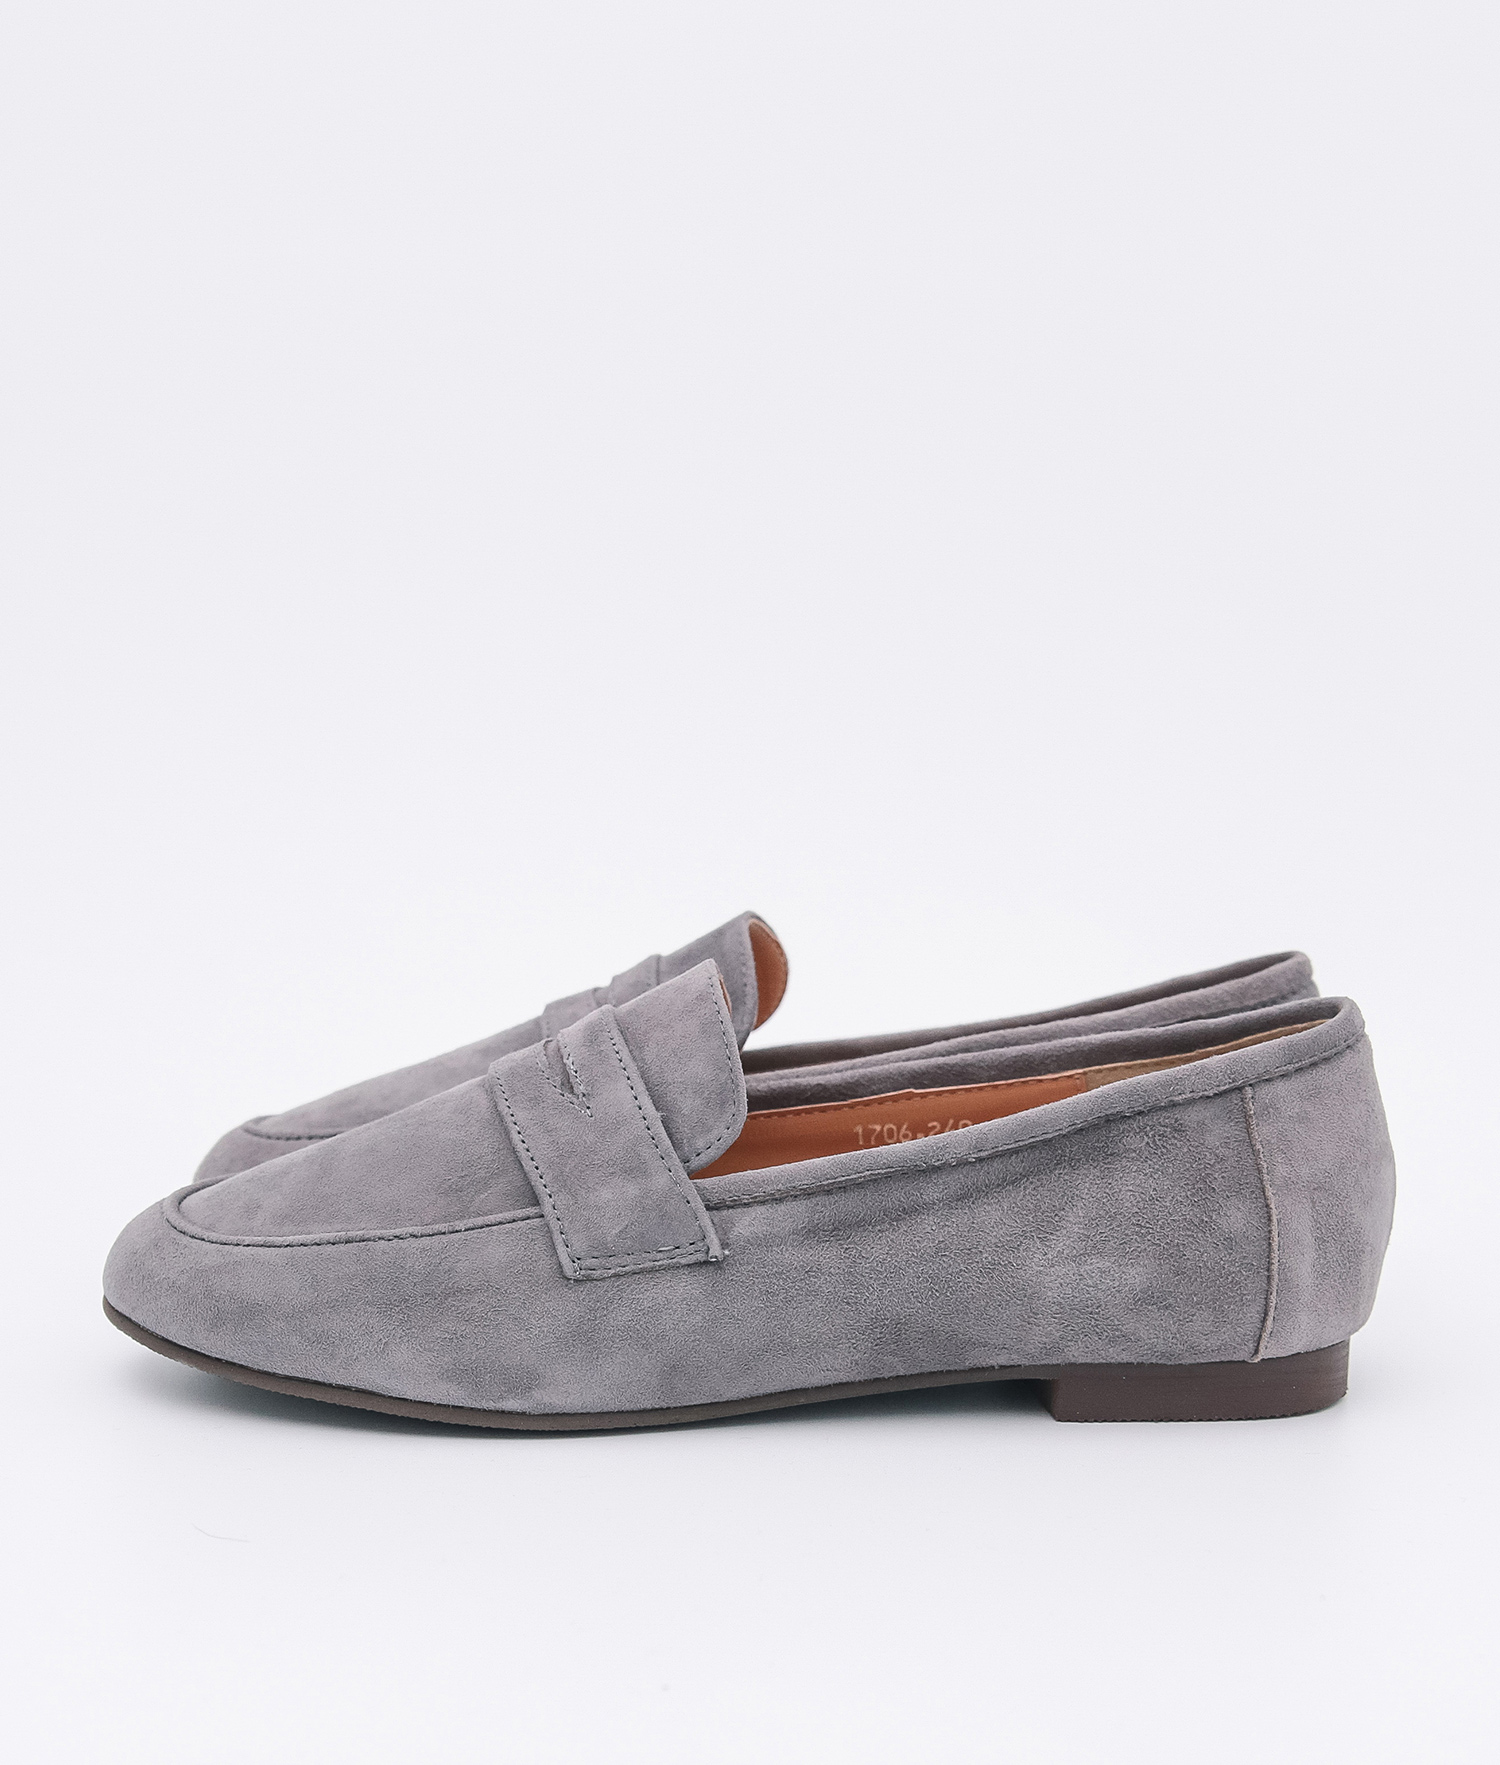 d45010c4aab AnnaKastle Womens Cute Suede Penny Loafers Gray